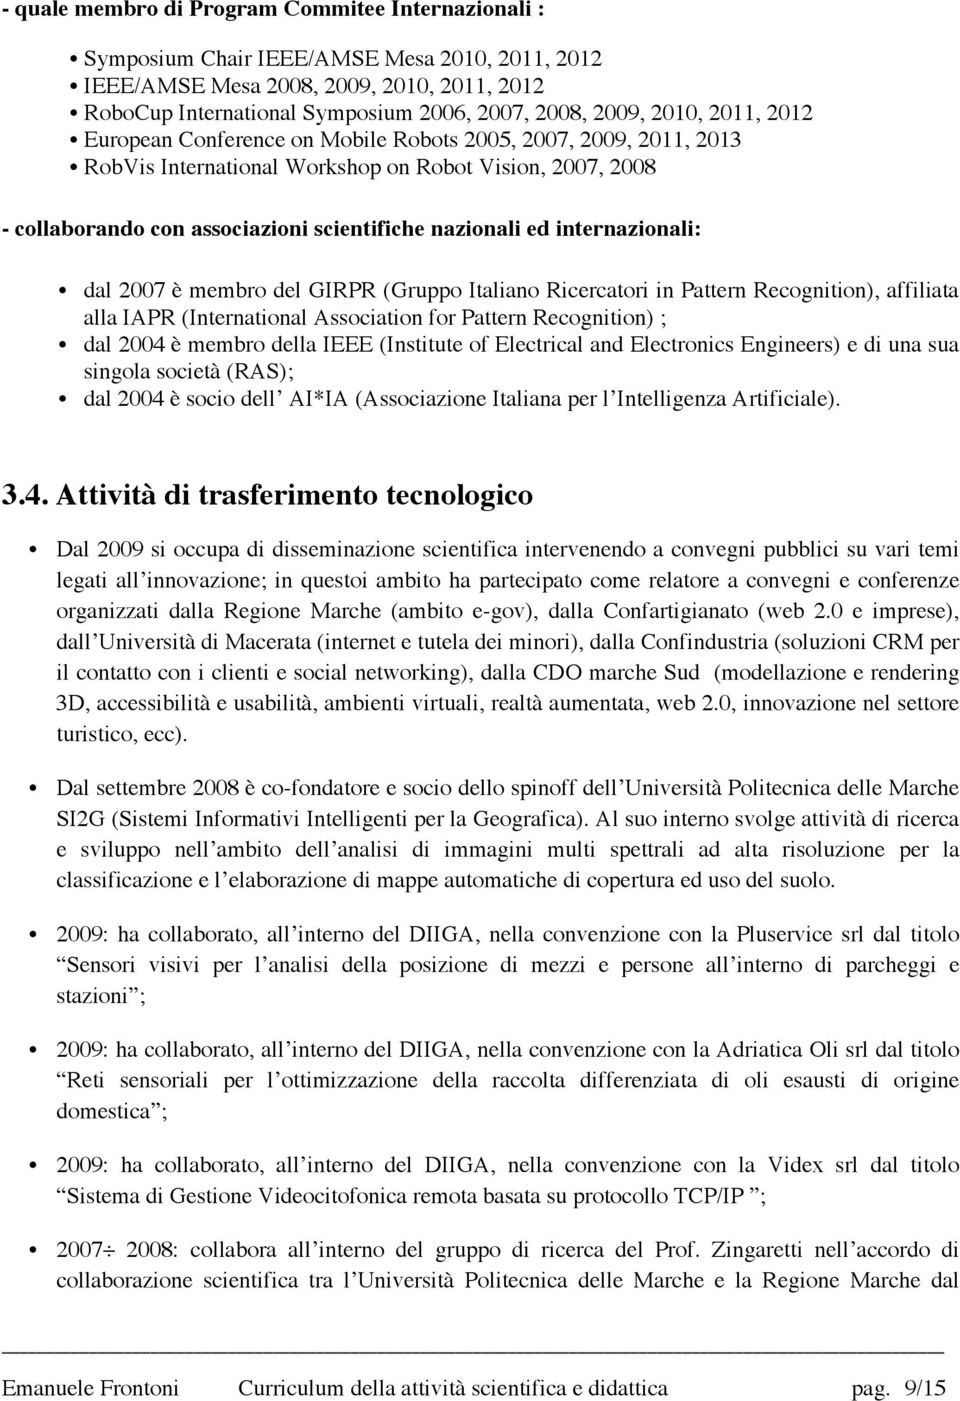 internazionali: dal 2007 è membro del GIRPR (Gruppo Italiano Ricercatori in Pattern Recognition), affiliata alla IAPR (International Association for Pattern Recognition) ; dal 2004 è membro della